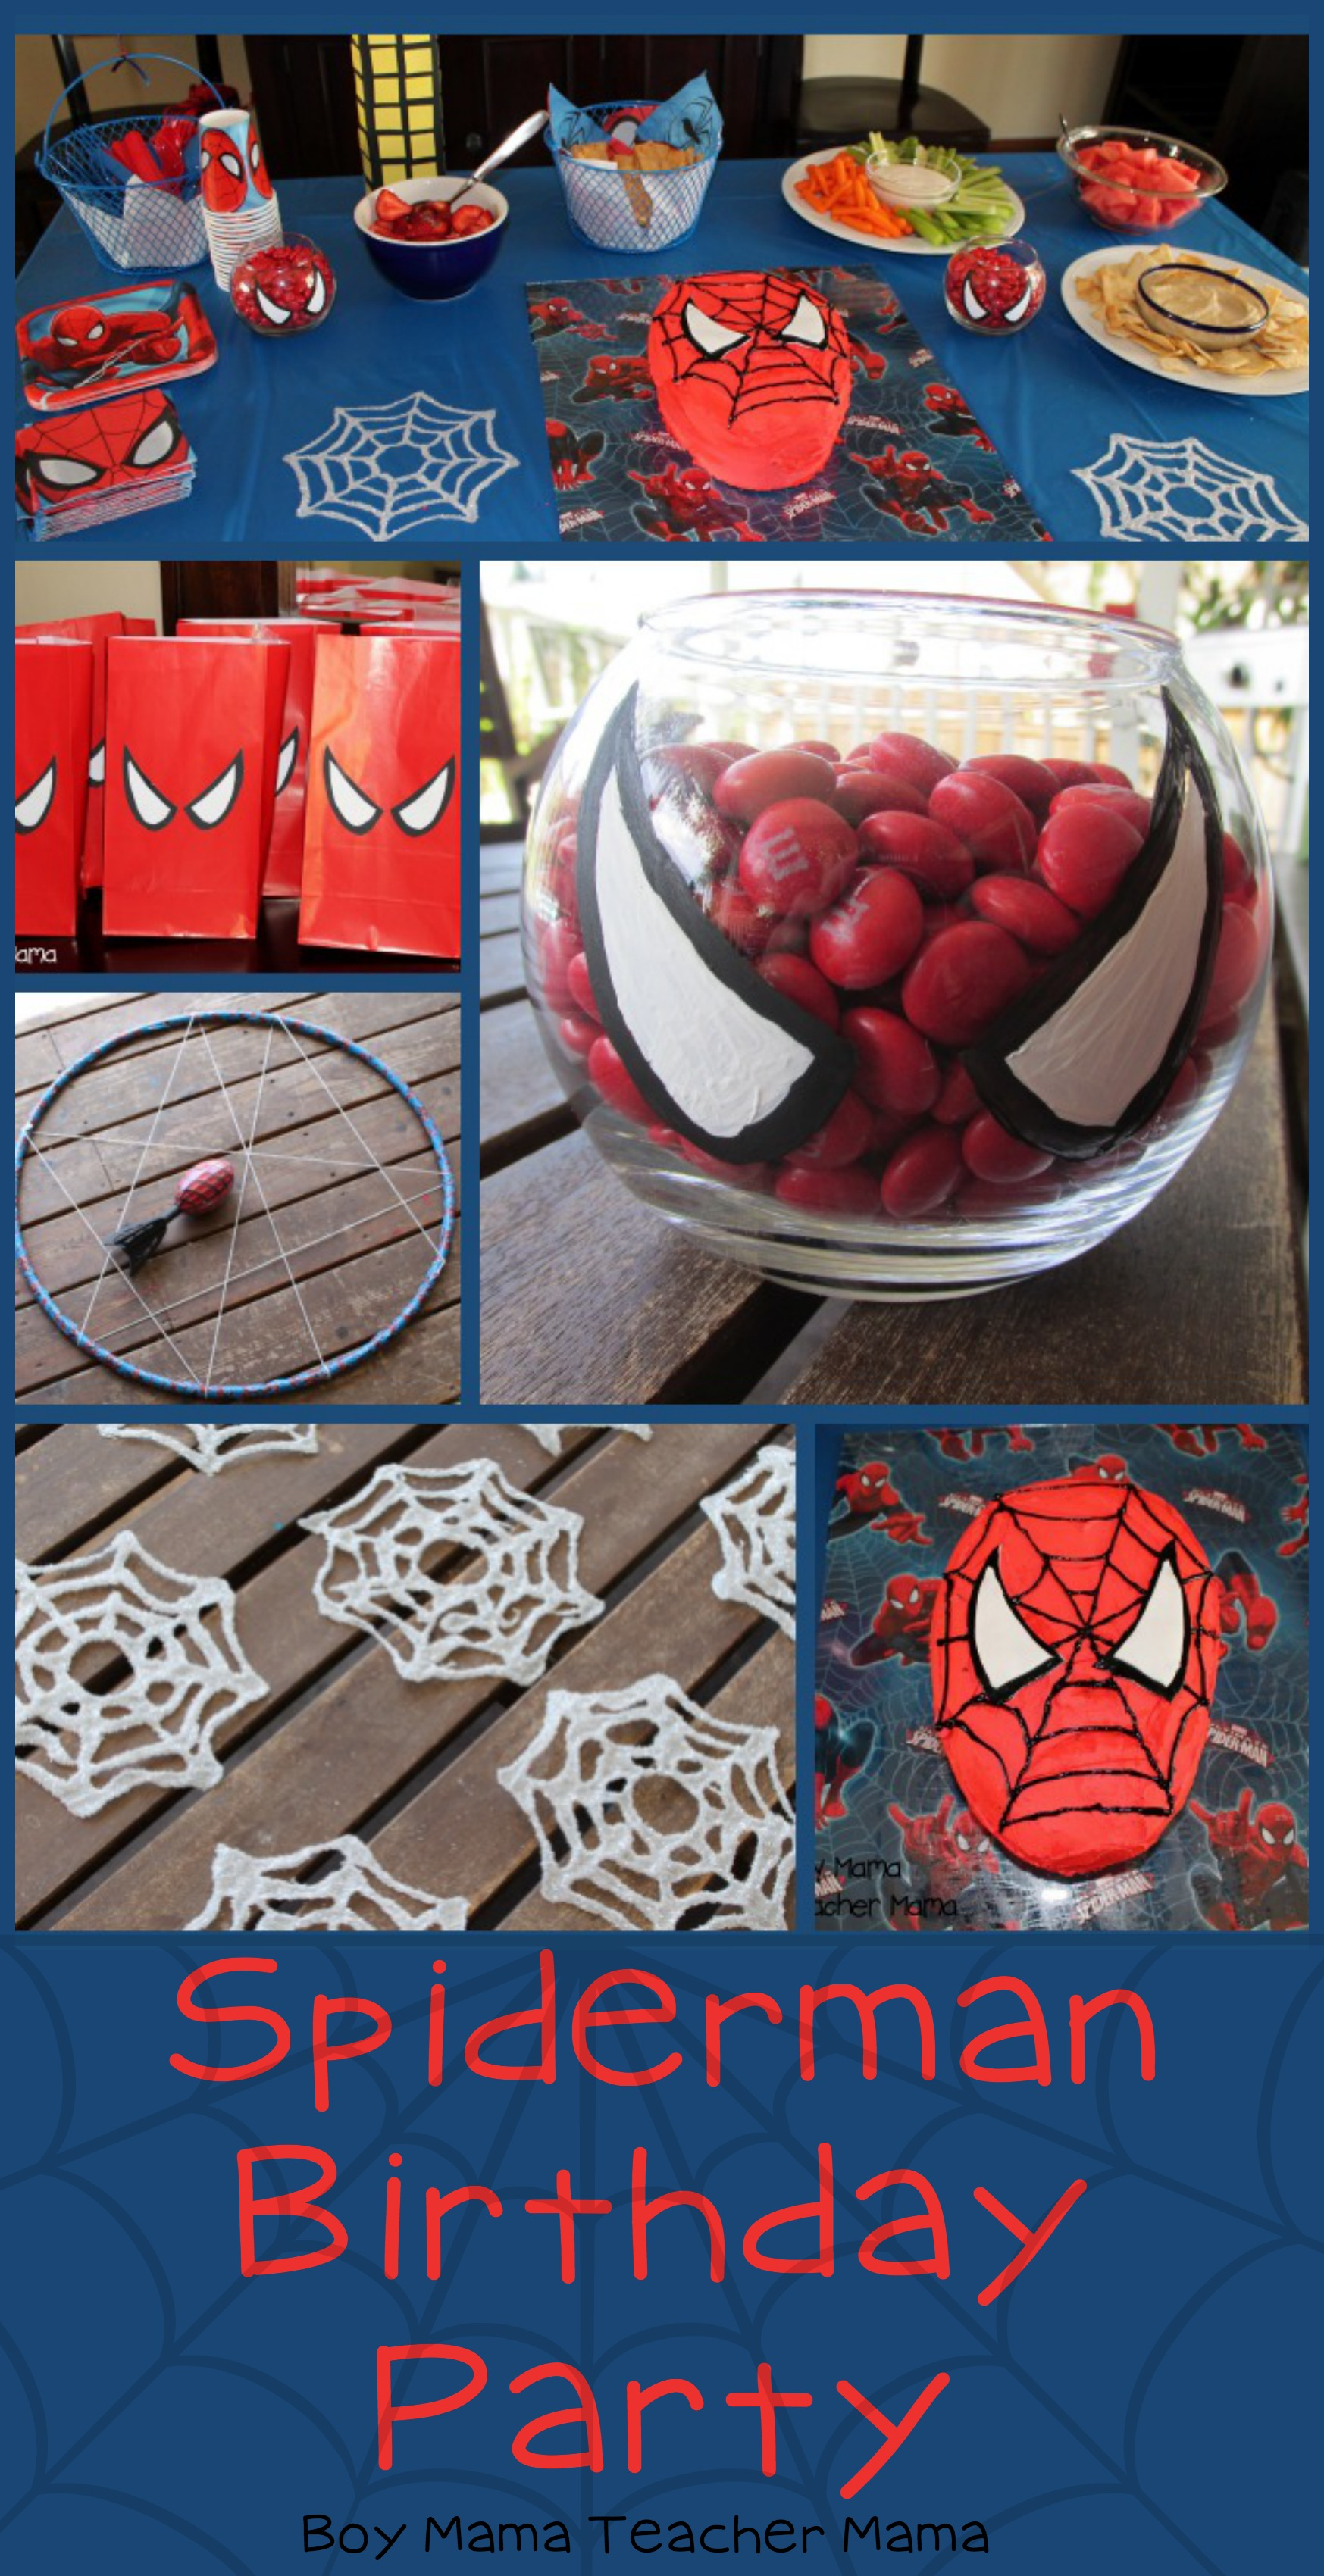 Boy Mama Teacher Spiderman Birthday Party Featured